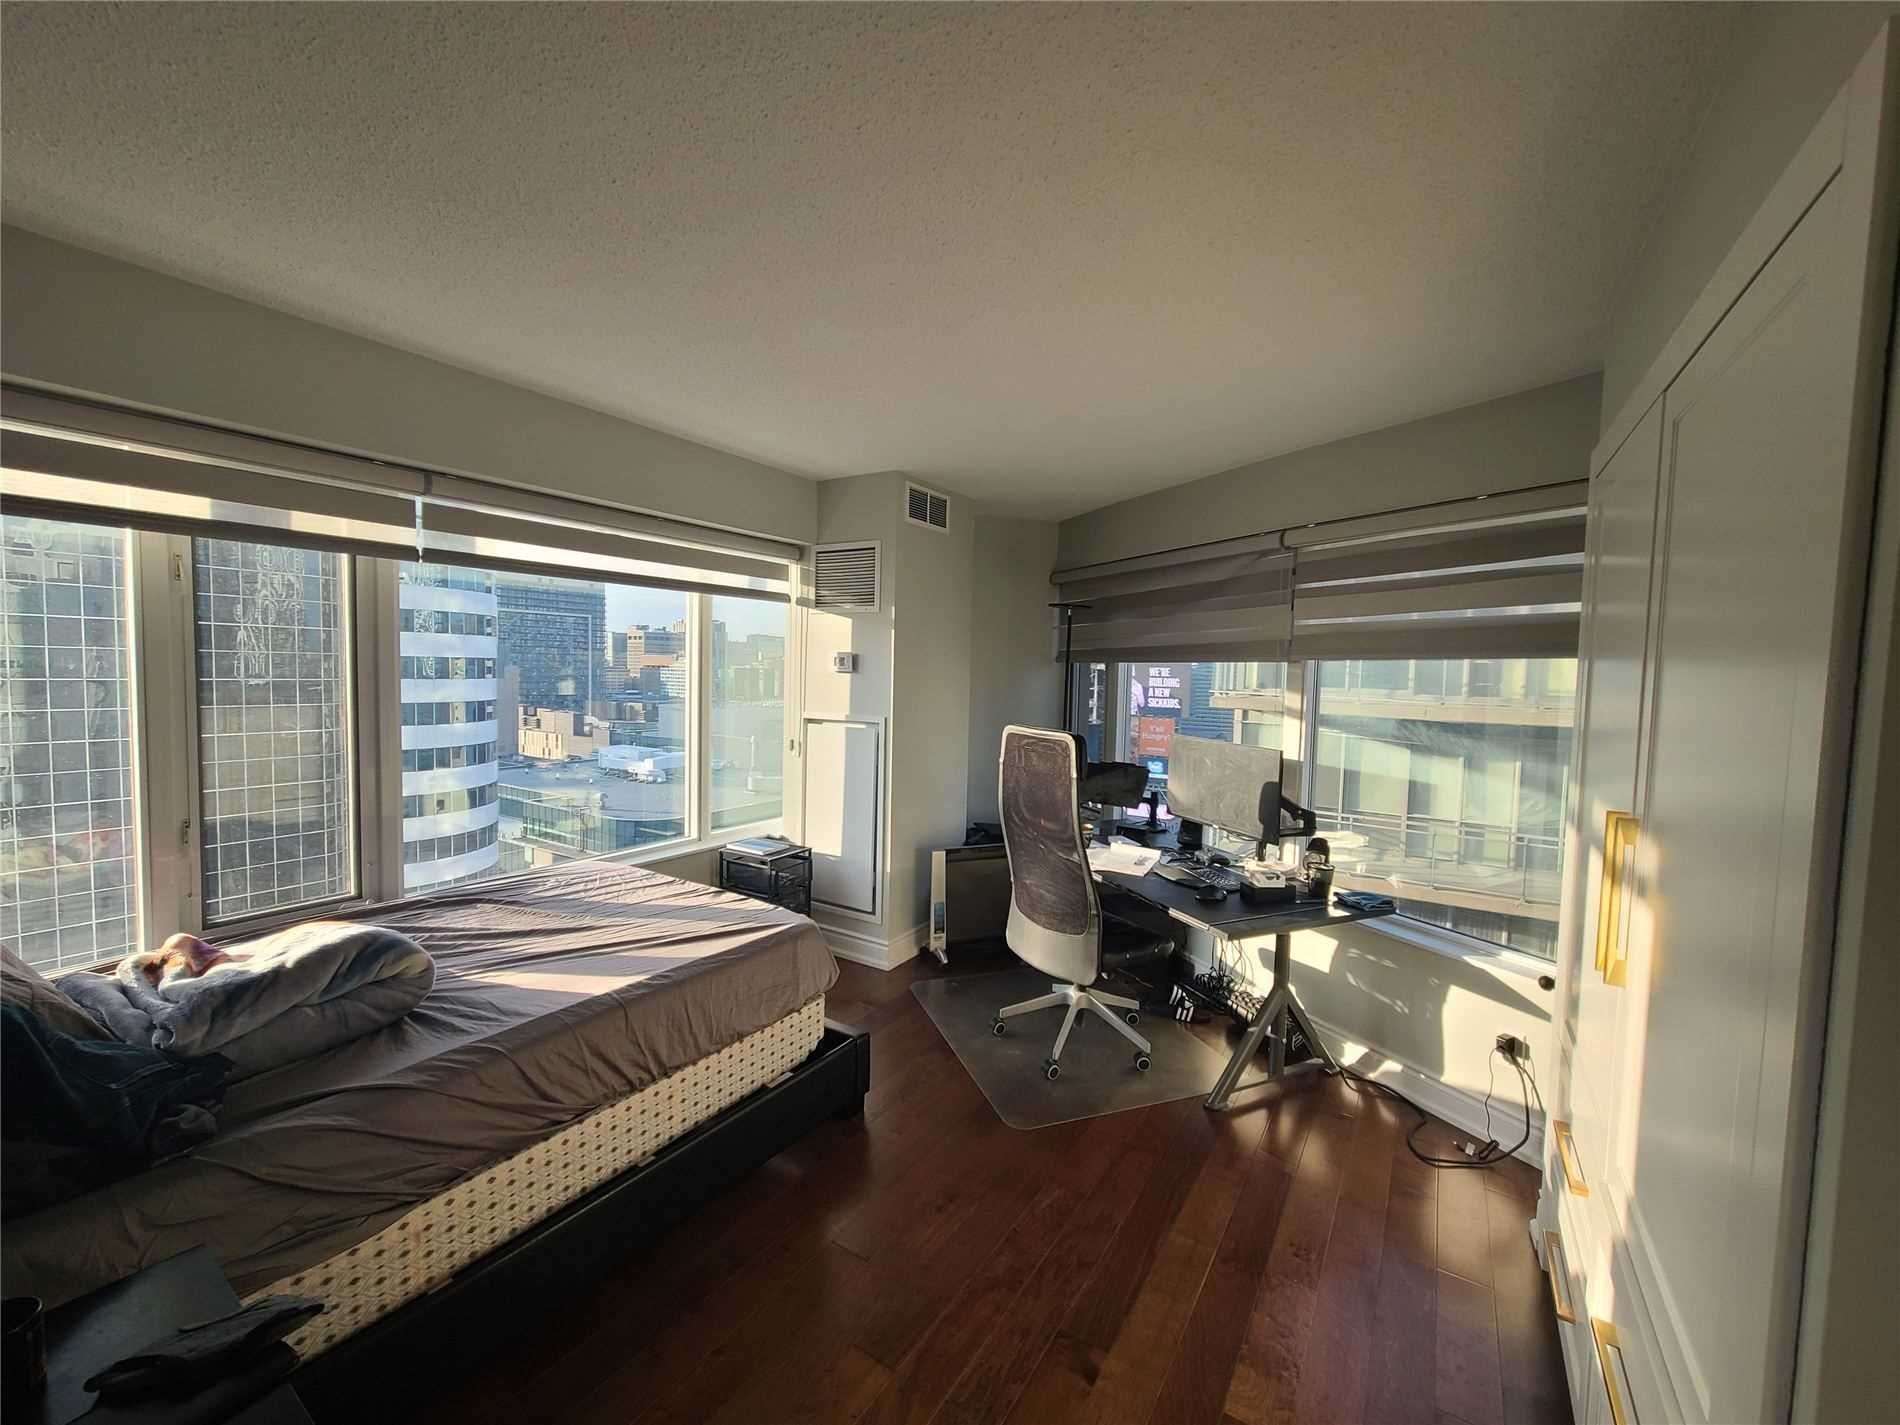 210 Victoria St, unit 2010 for rent in Toronto - image #1